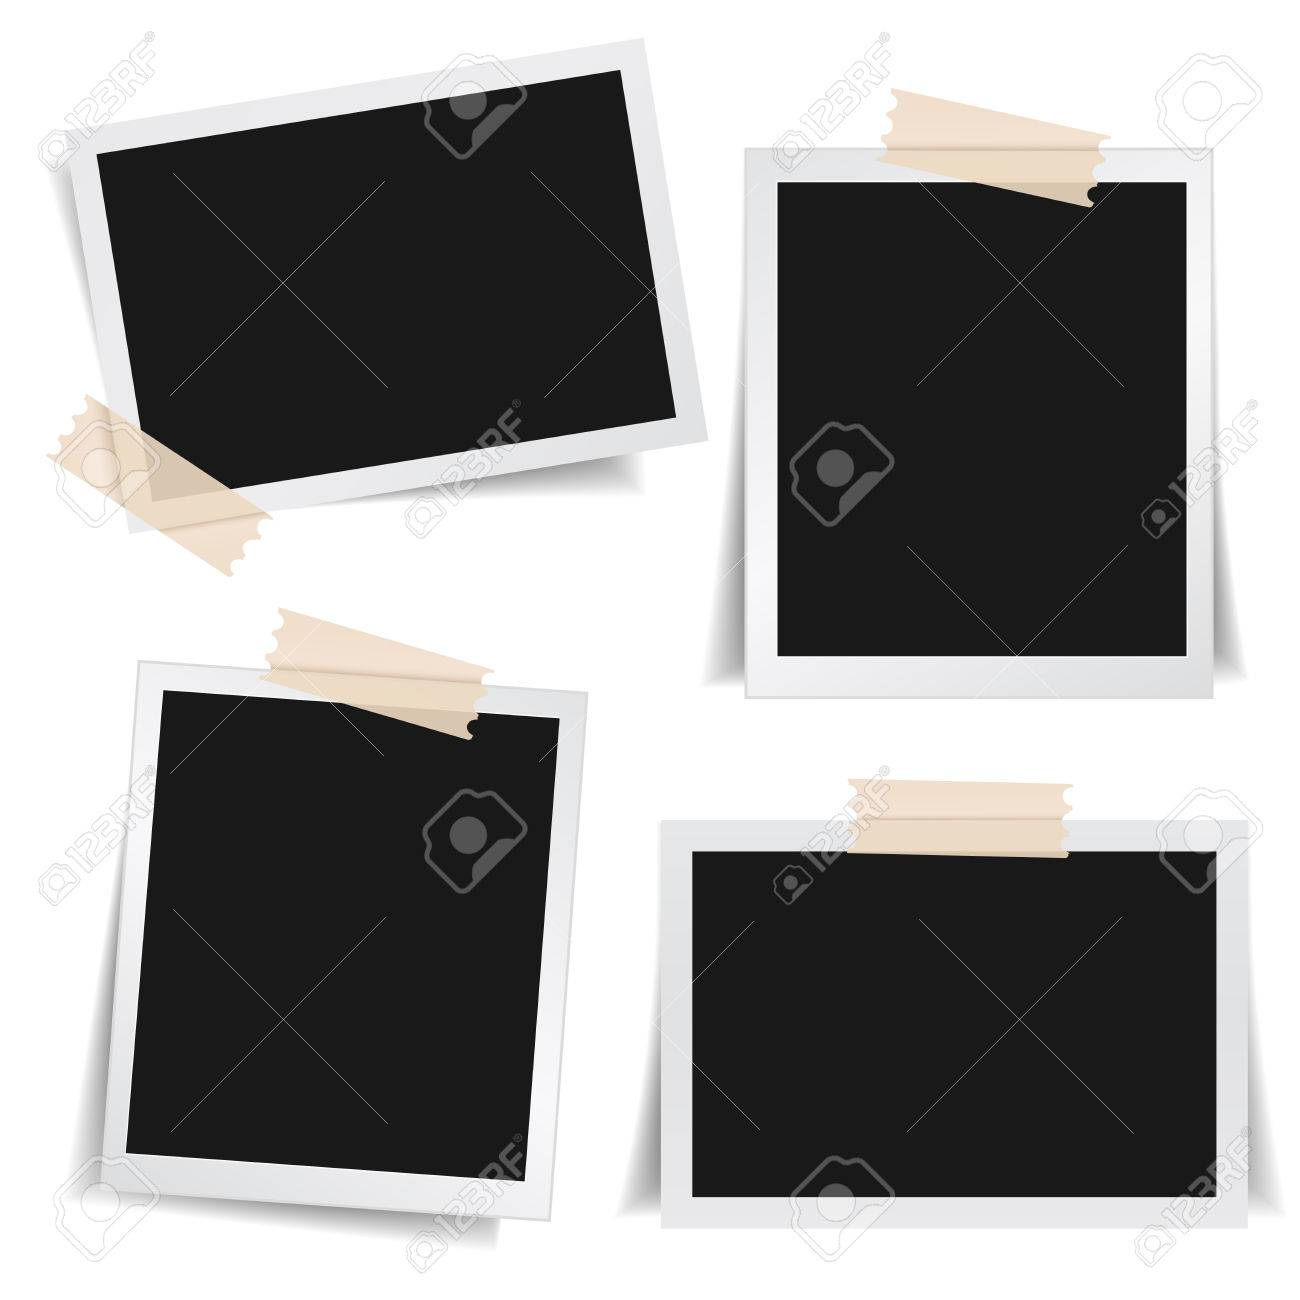 Collection Of Blank Photo Frames With Adhesive Tape, Different ...